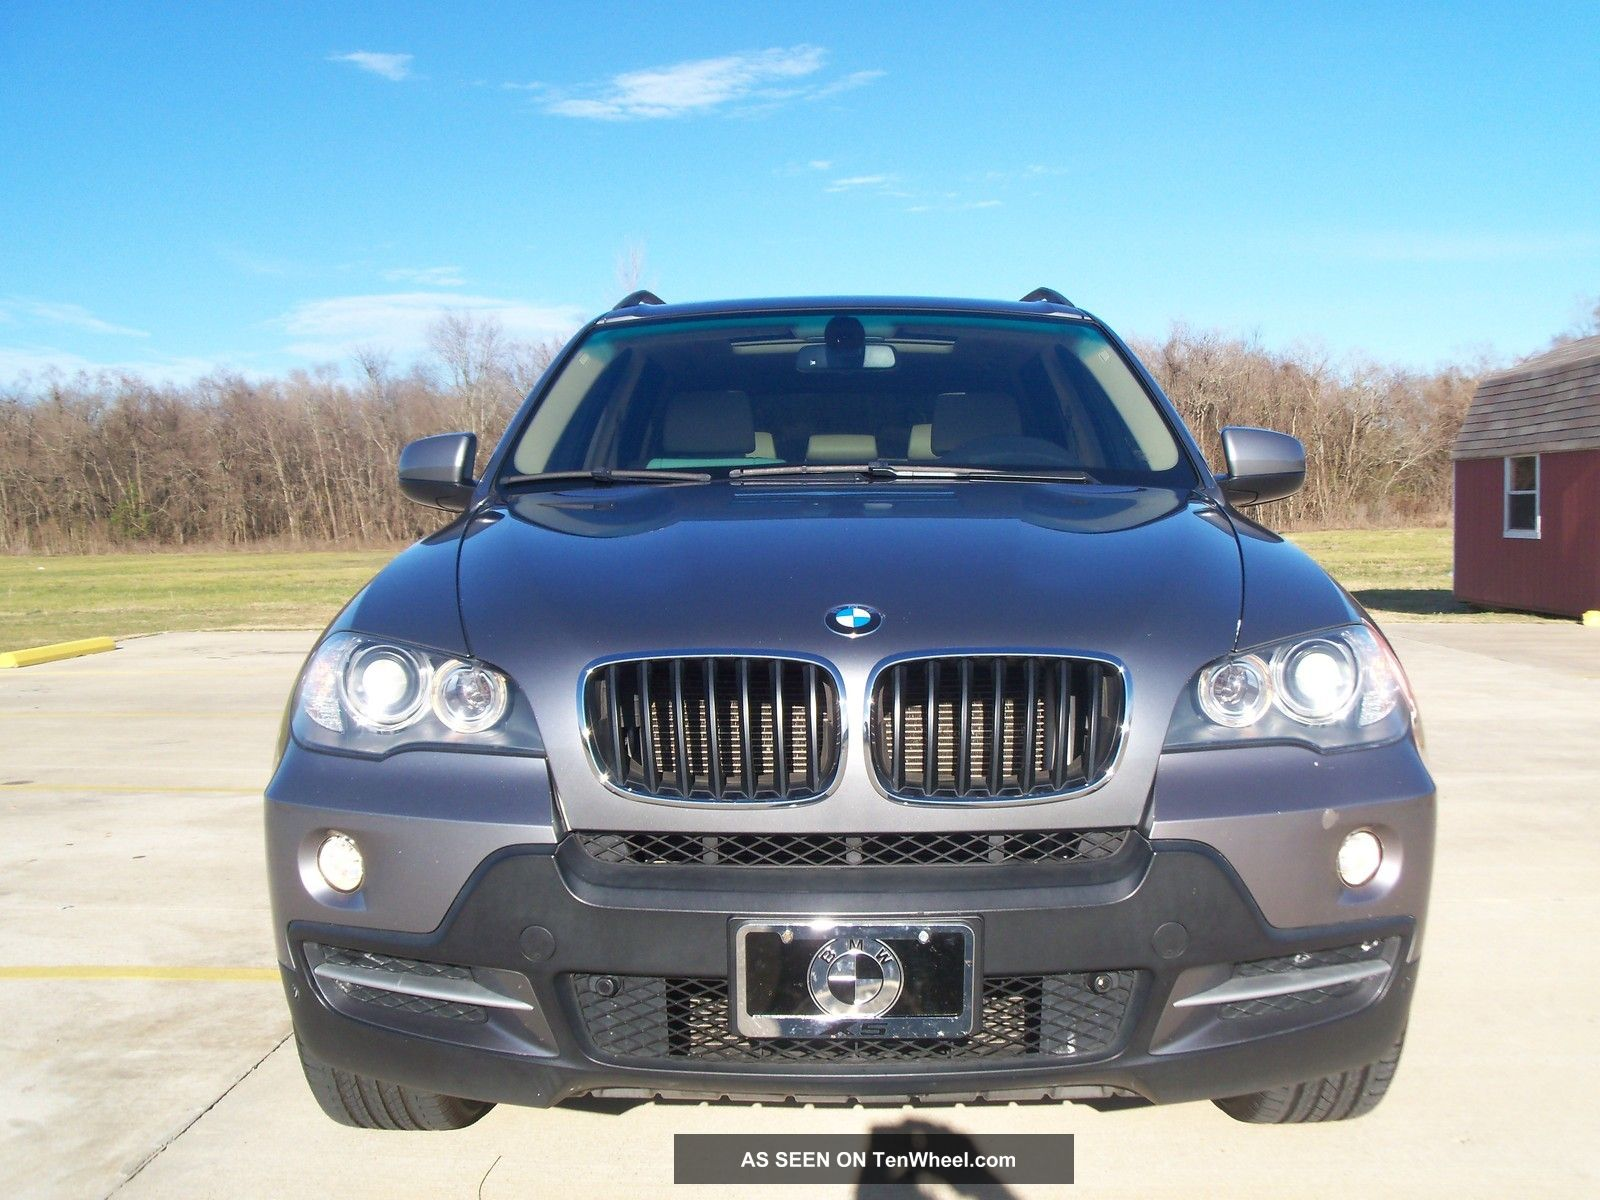 2007 bmw x5 3 0si panoramic 86k 3rd row rear dvd. Black Bedroom Furniture Sets. Home Design Ideas